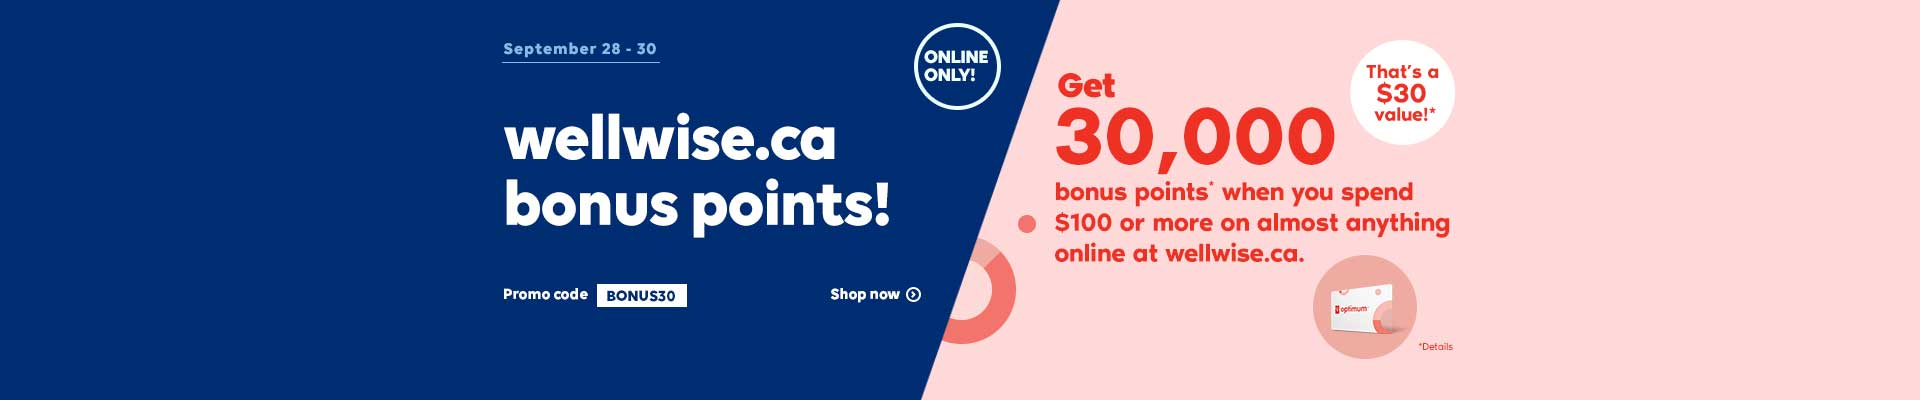 Online Only! September 28 - 30, 2020. Get 30,000 bonus points* when you spend $100 or more on almost anything online at wellwise.ca. Promo code BONUS30. That's a $30 value!* Shop now. *Details.